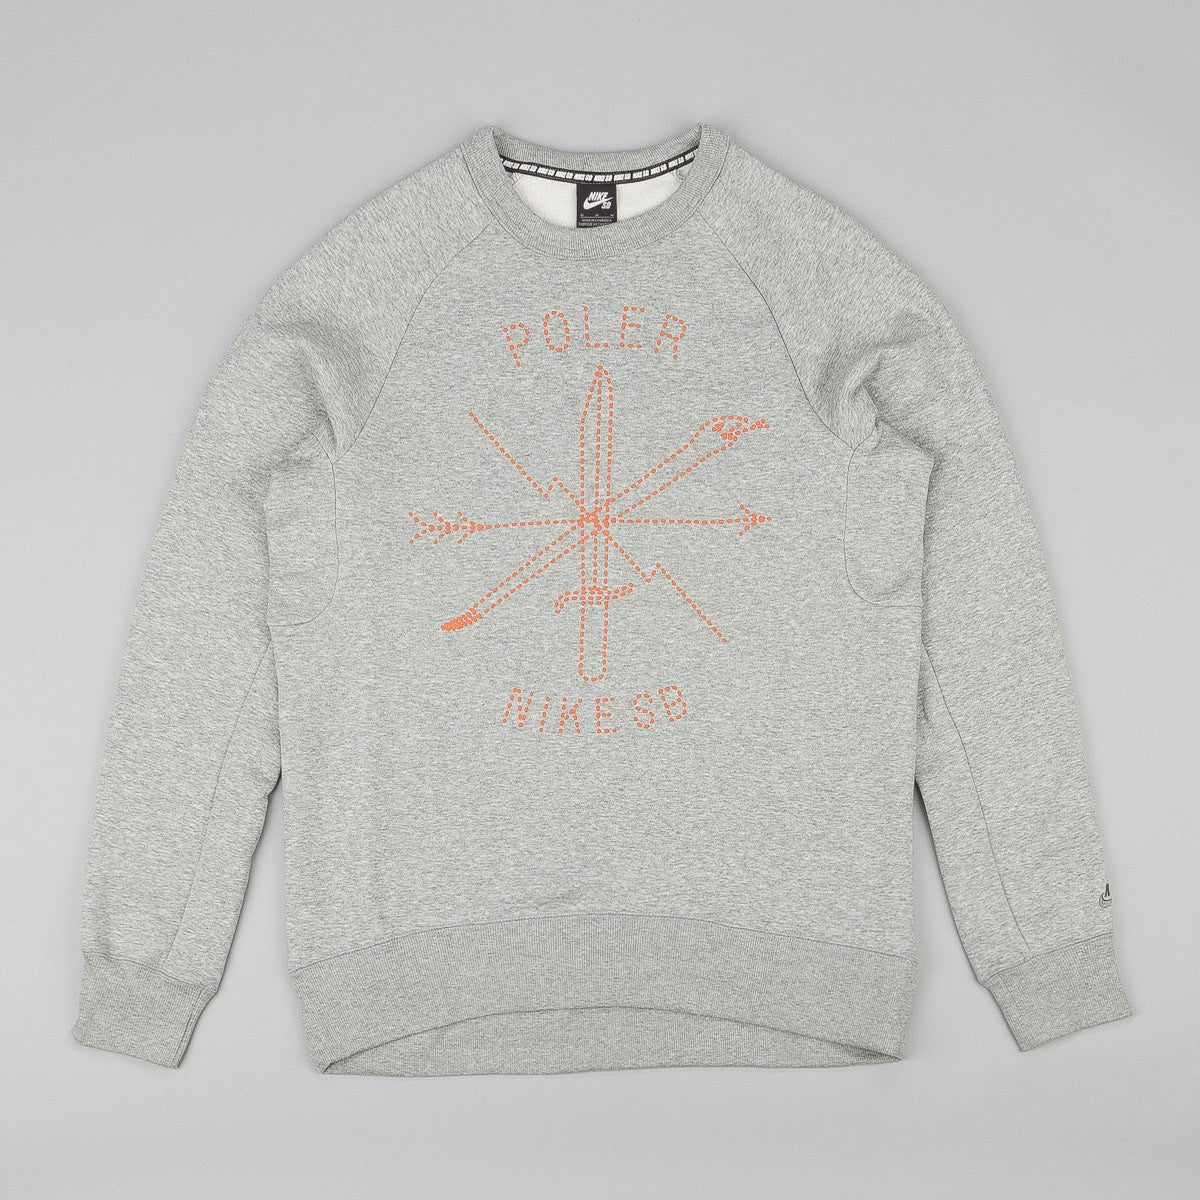 Nike SB X Poler Icon Crew Neck Sweatshirt - Dark Heather Grey